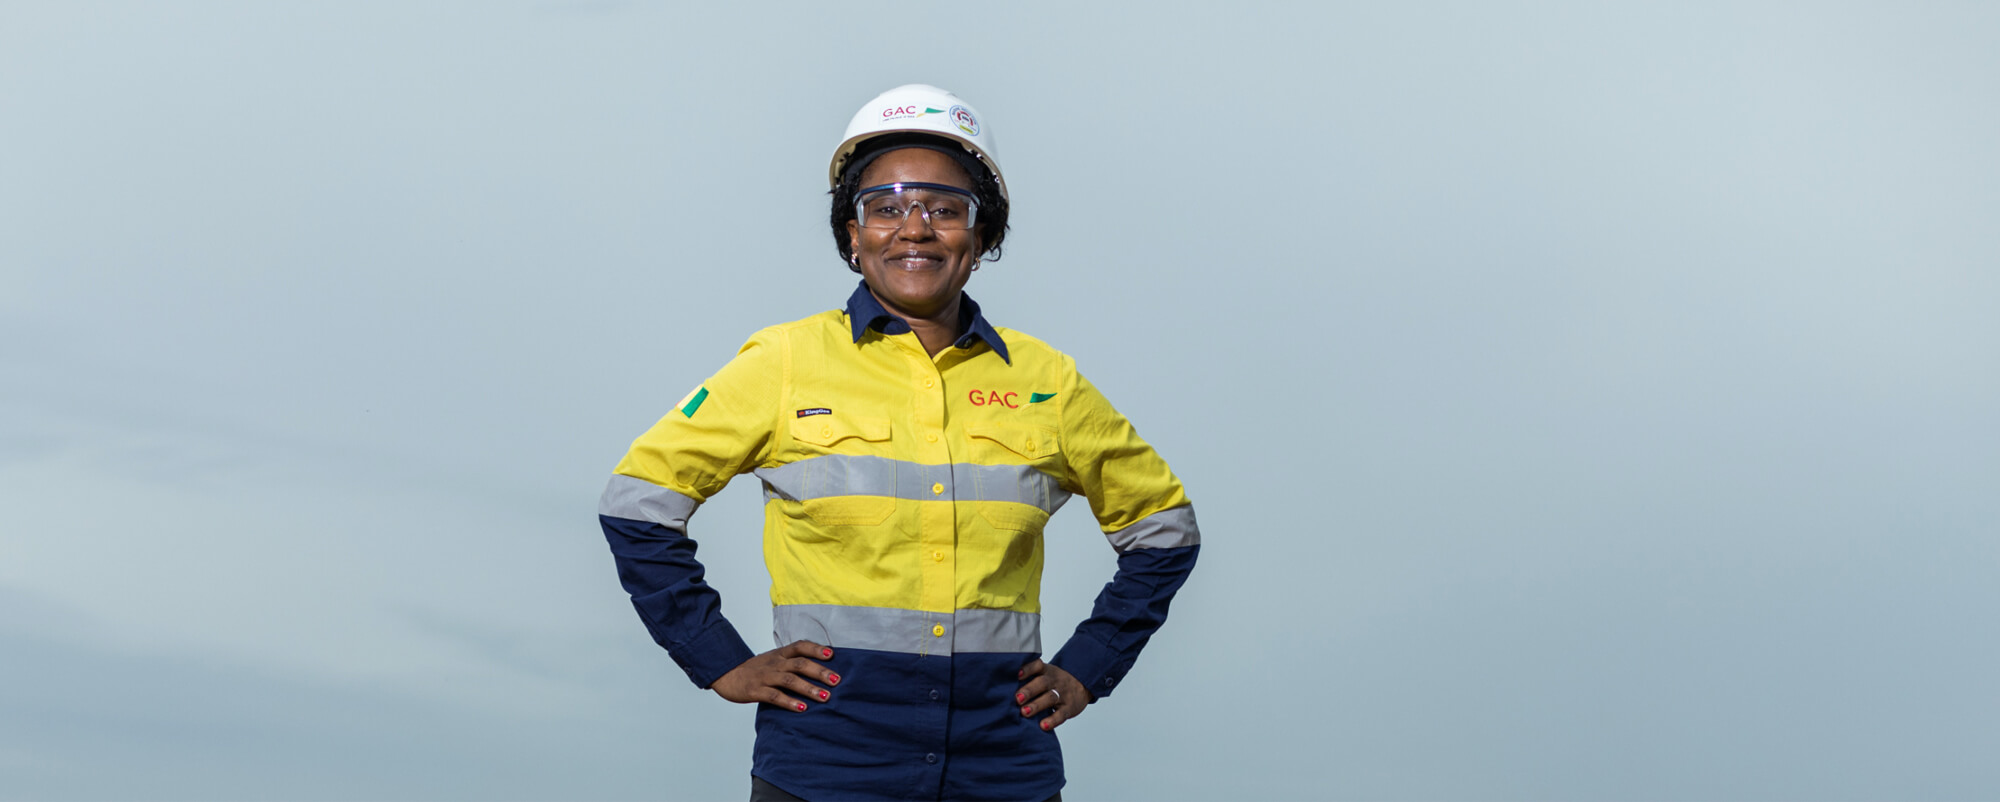 Profile Aissata Beavogui with a hardhat and her company uniform